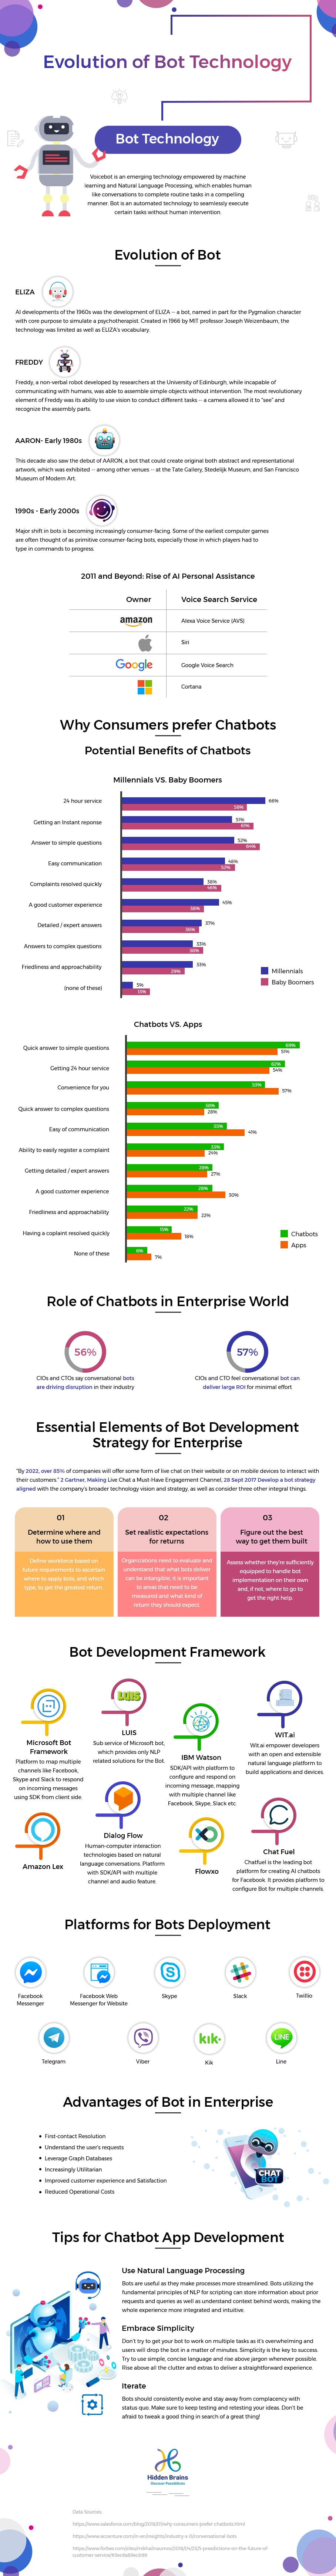 Evolution of Bot Technology